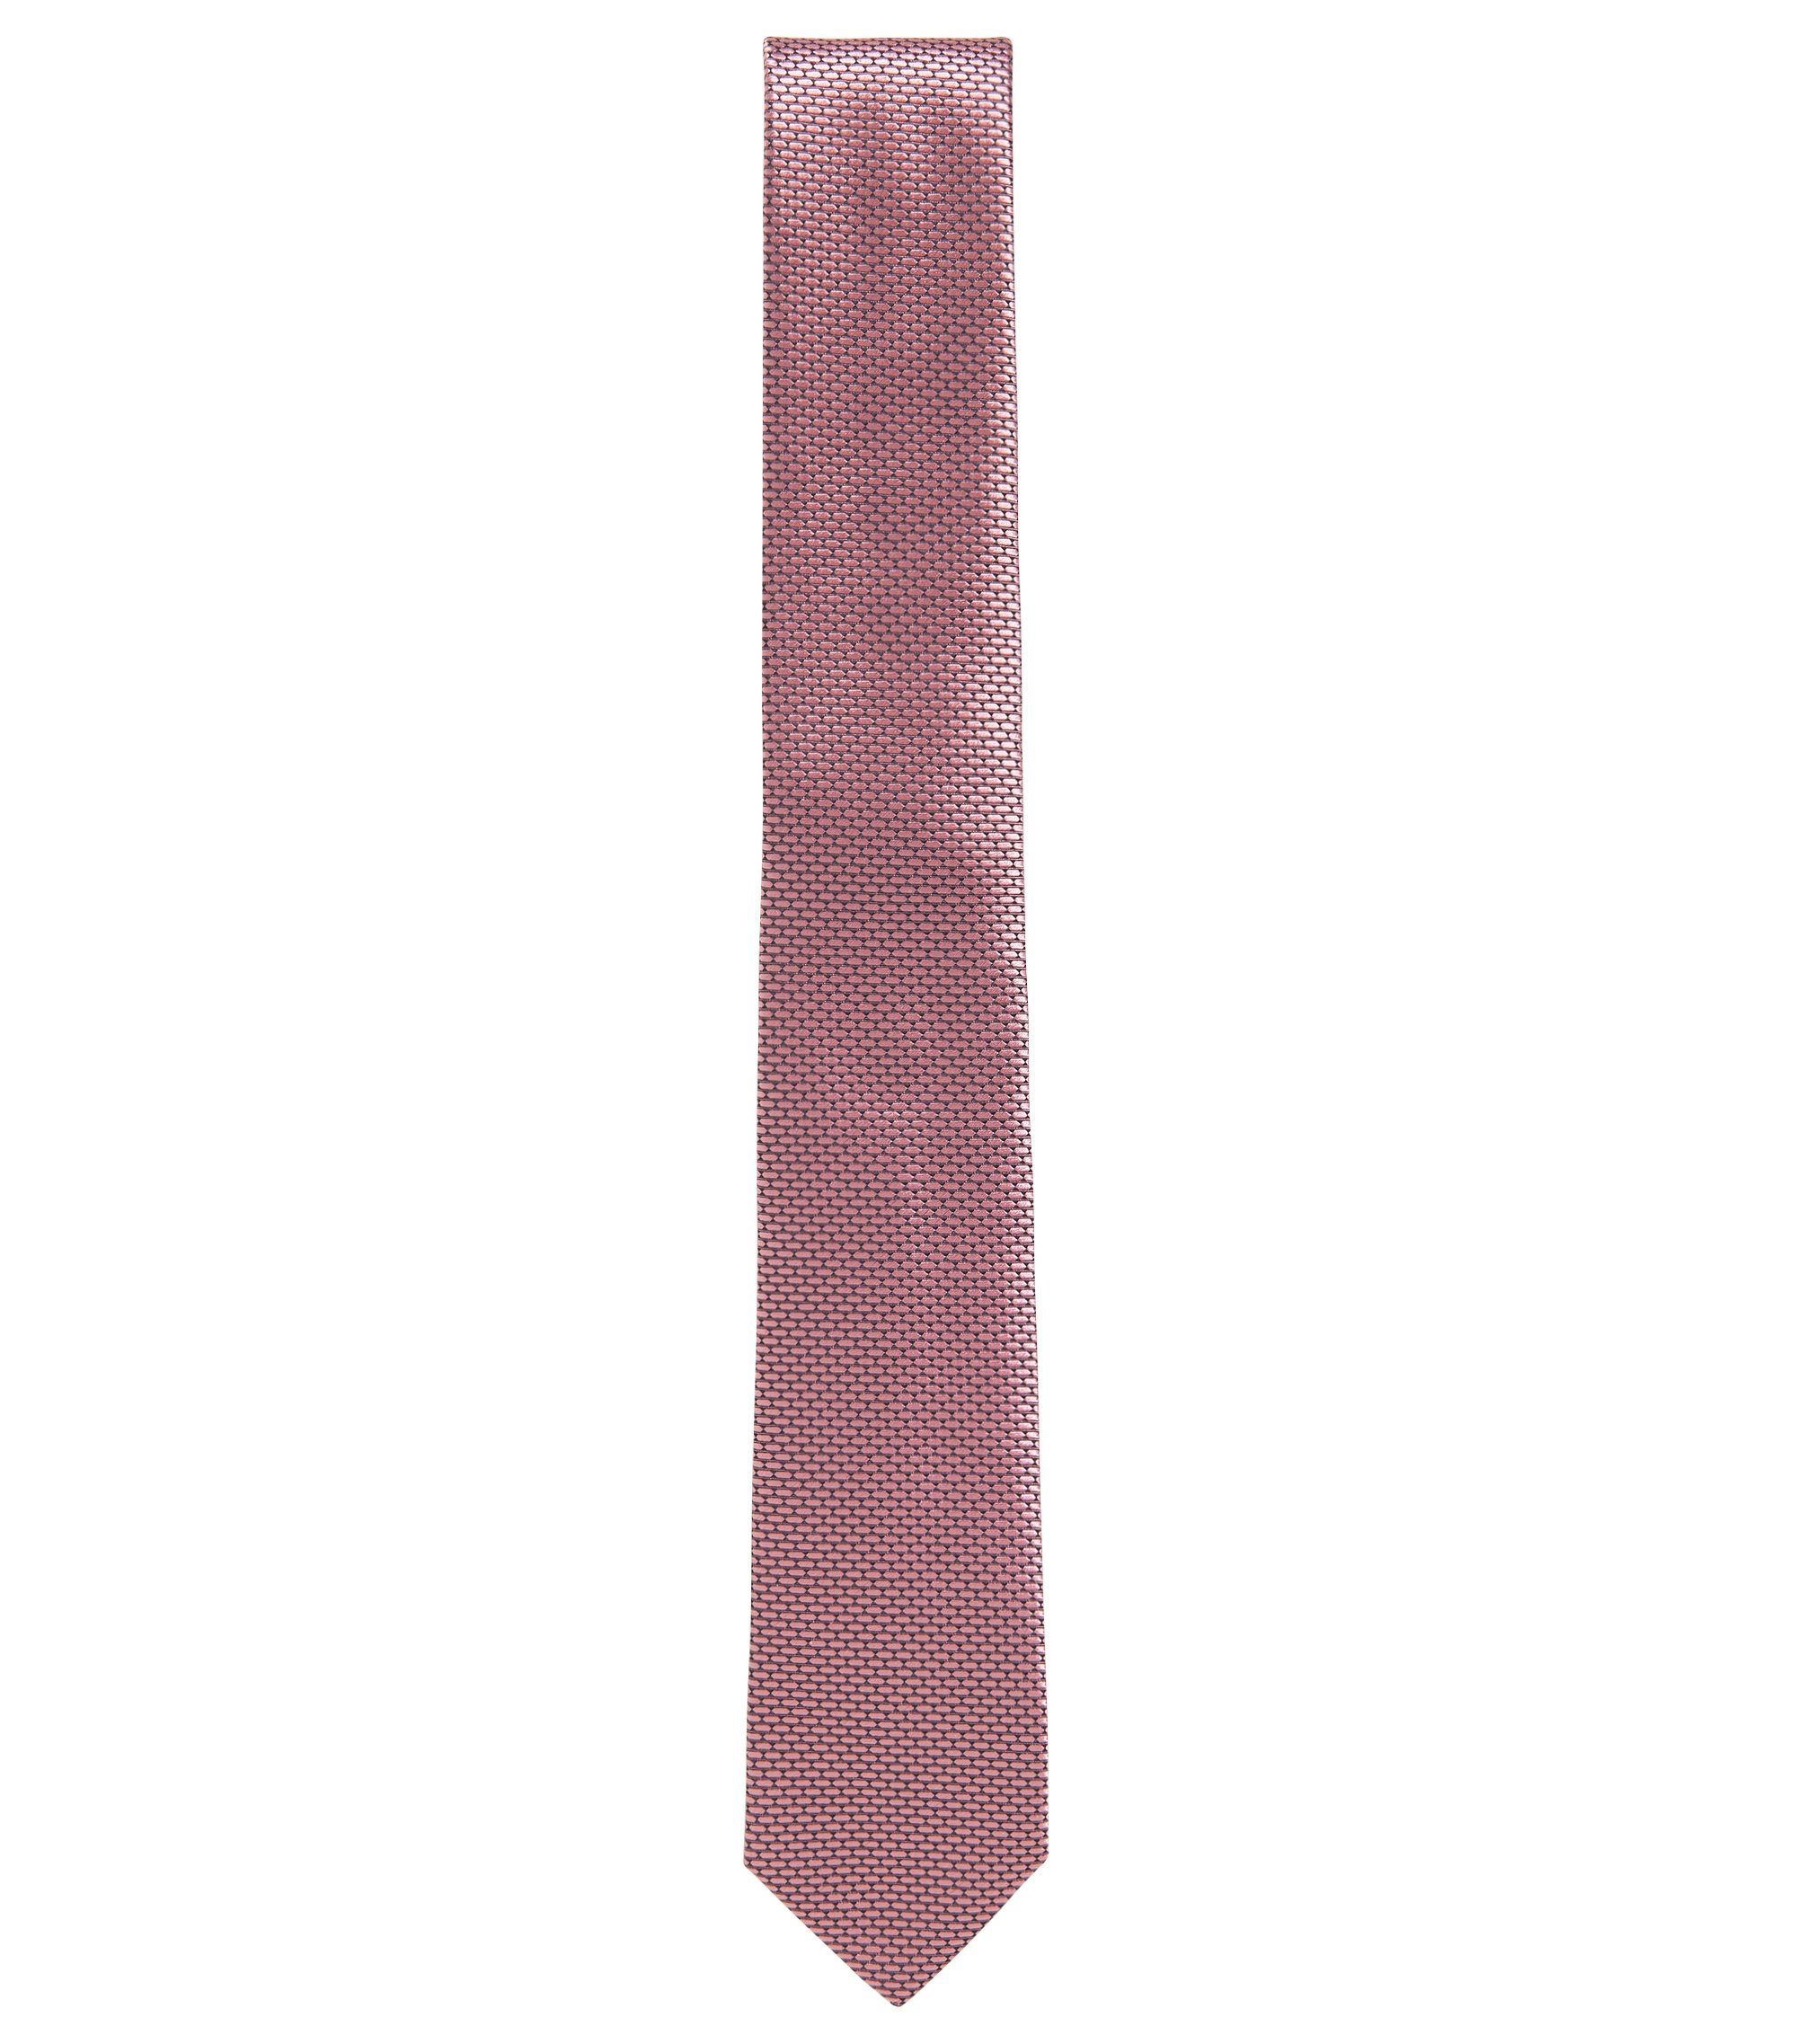 BOSS Tailored Textured Italian Silk Slim Tie, light pink